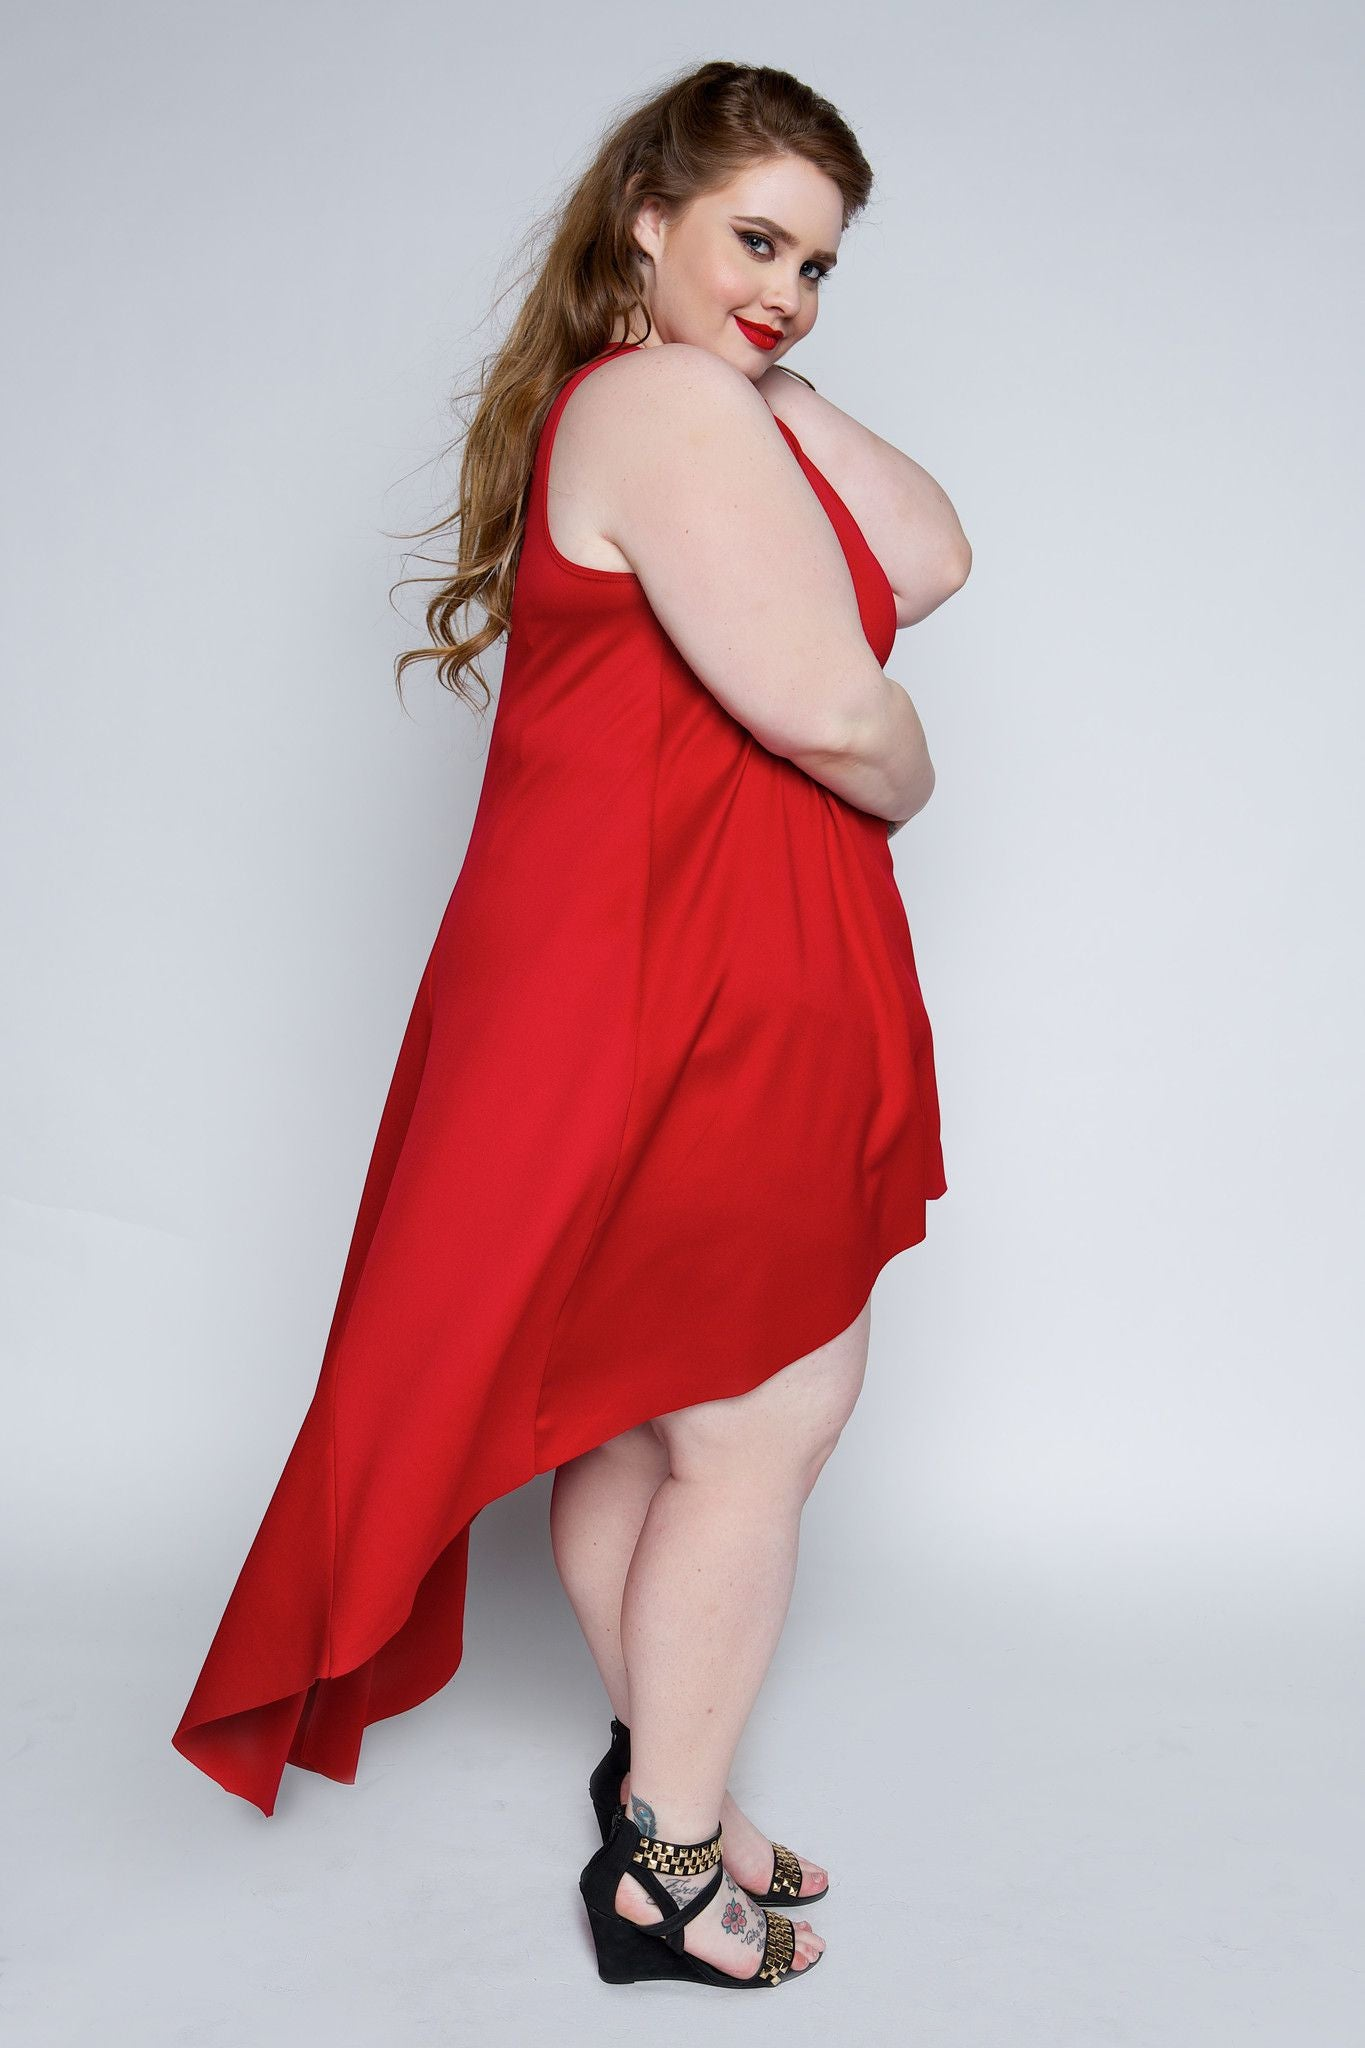 Plus size clothing for women online shopping